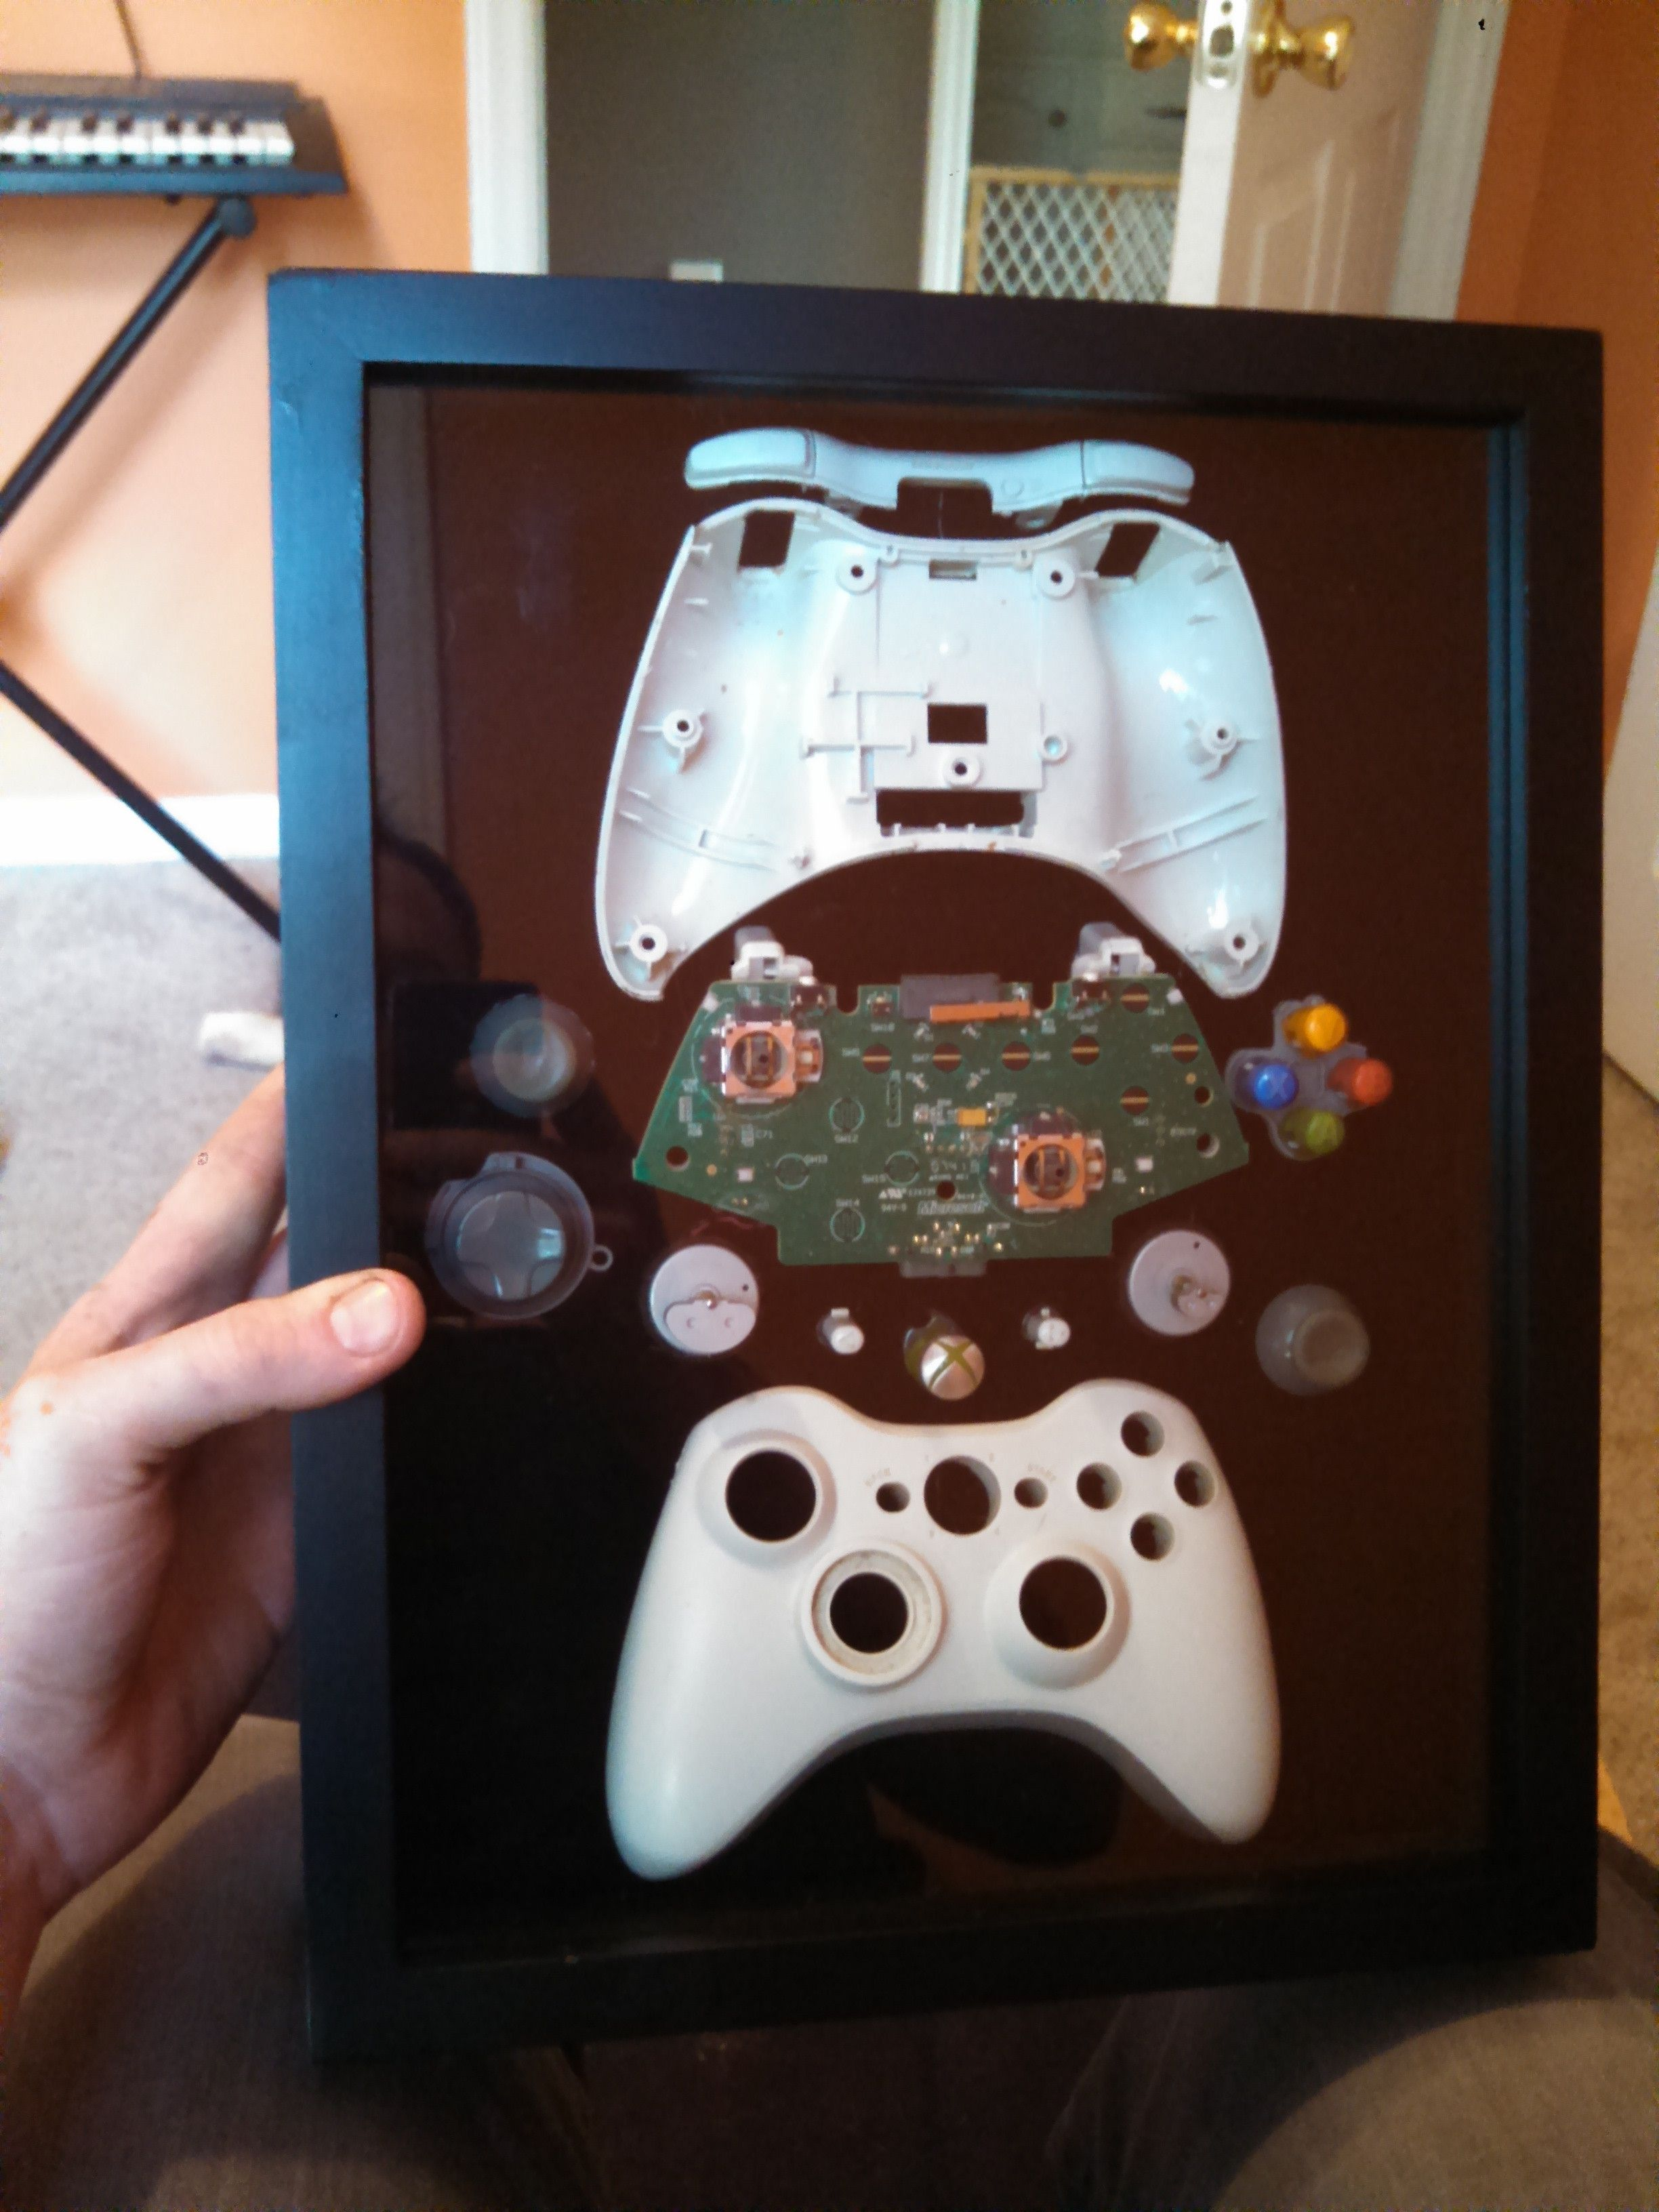 xbox 360 controller box imgur kinder u jugendzimmer pinterest ideen zocker zimmer und deko. Black Bedroom Furniture Sets. Home Design Ideas